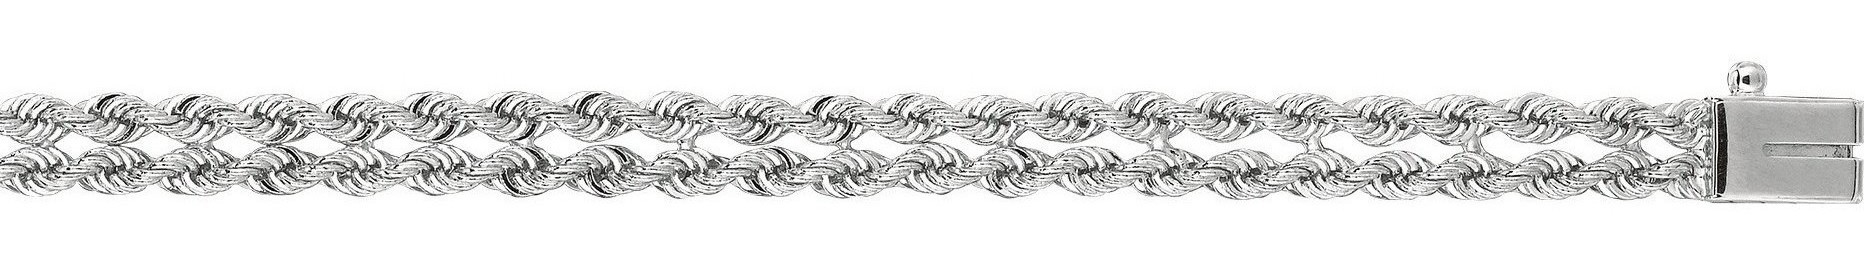 "7"" 14K White Gold 5.0mm (1/5"") Polished Diamond Multi Line Rope Chain w/ Box Catch Clasp"